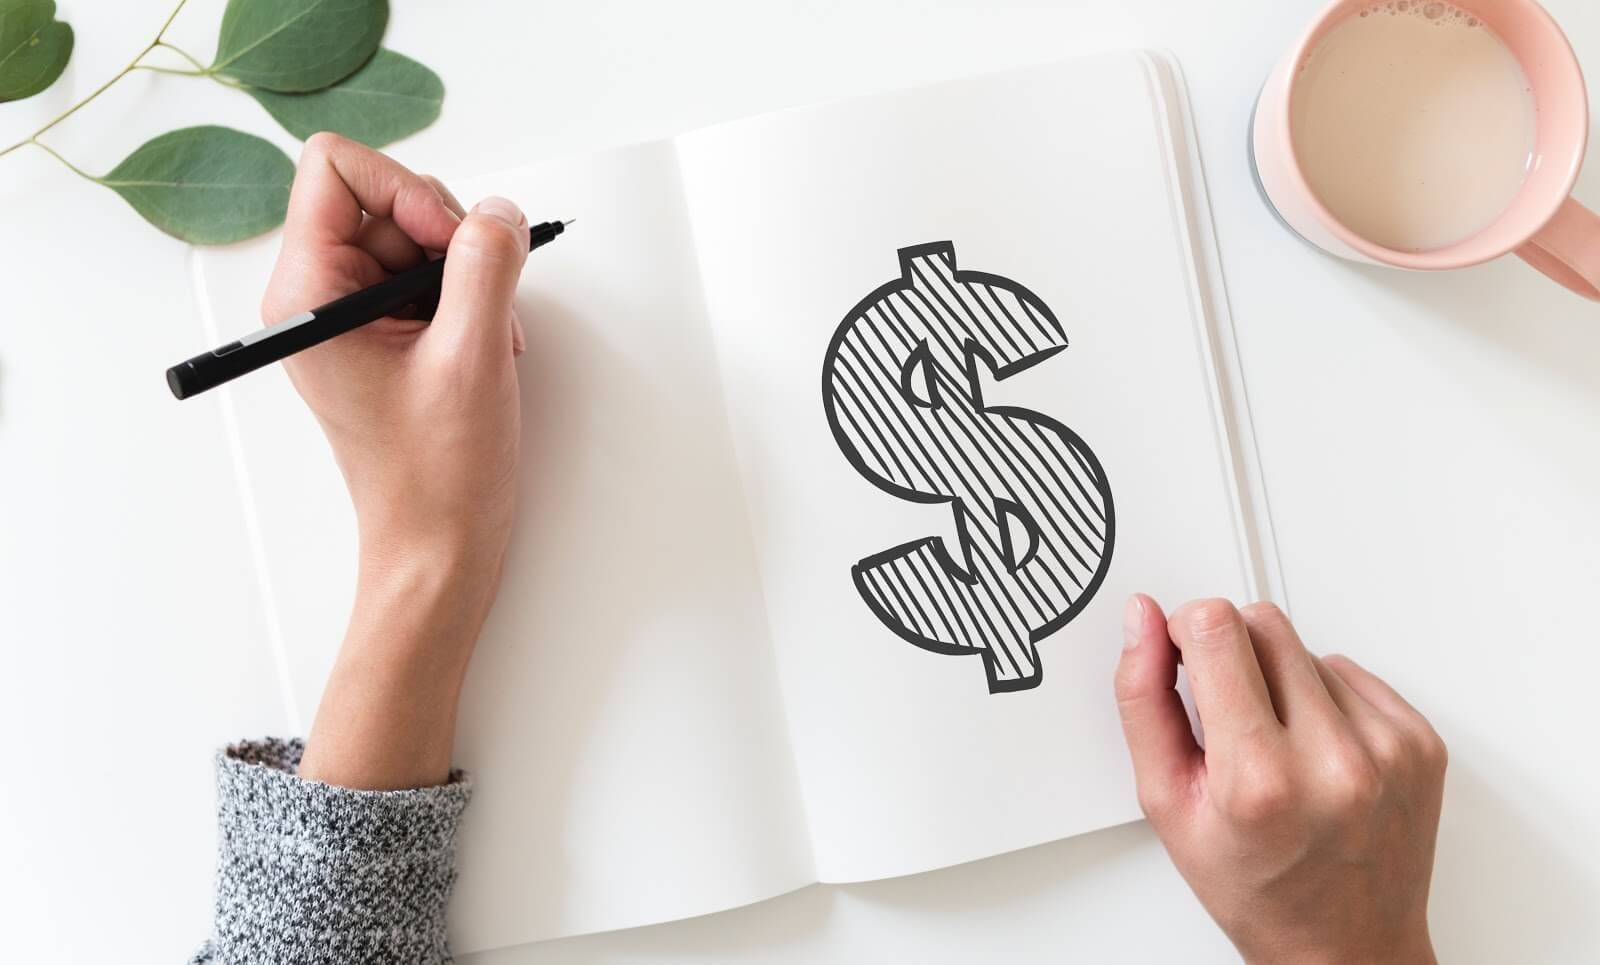 A woman's hands as seen from above, holding a pen above a journal with a large dollar sign written on it. Rewire PBS Work Freelance or Contract